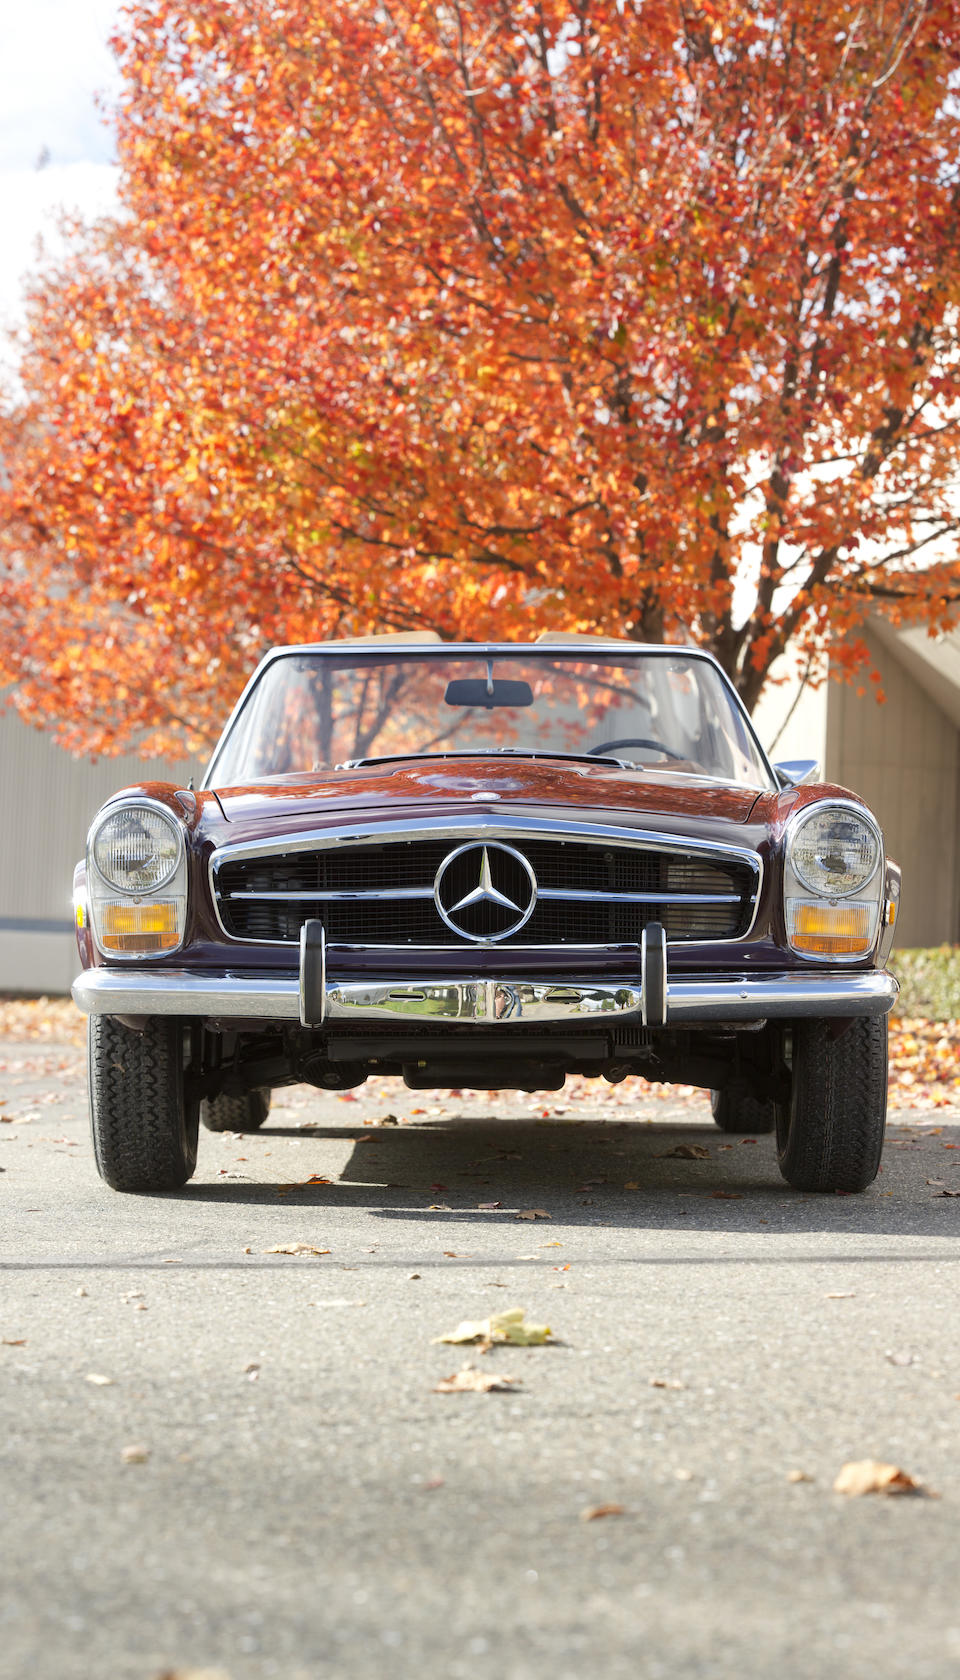 1968 Mercedes-Benz 280SL  Chassis no. 113.044.12.006542